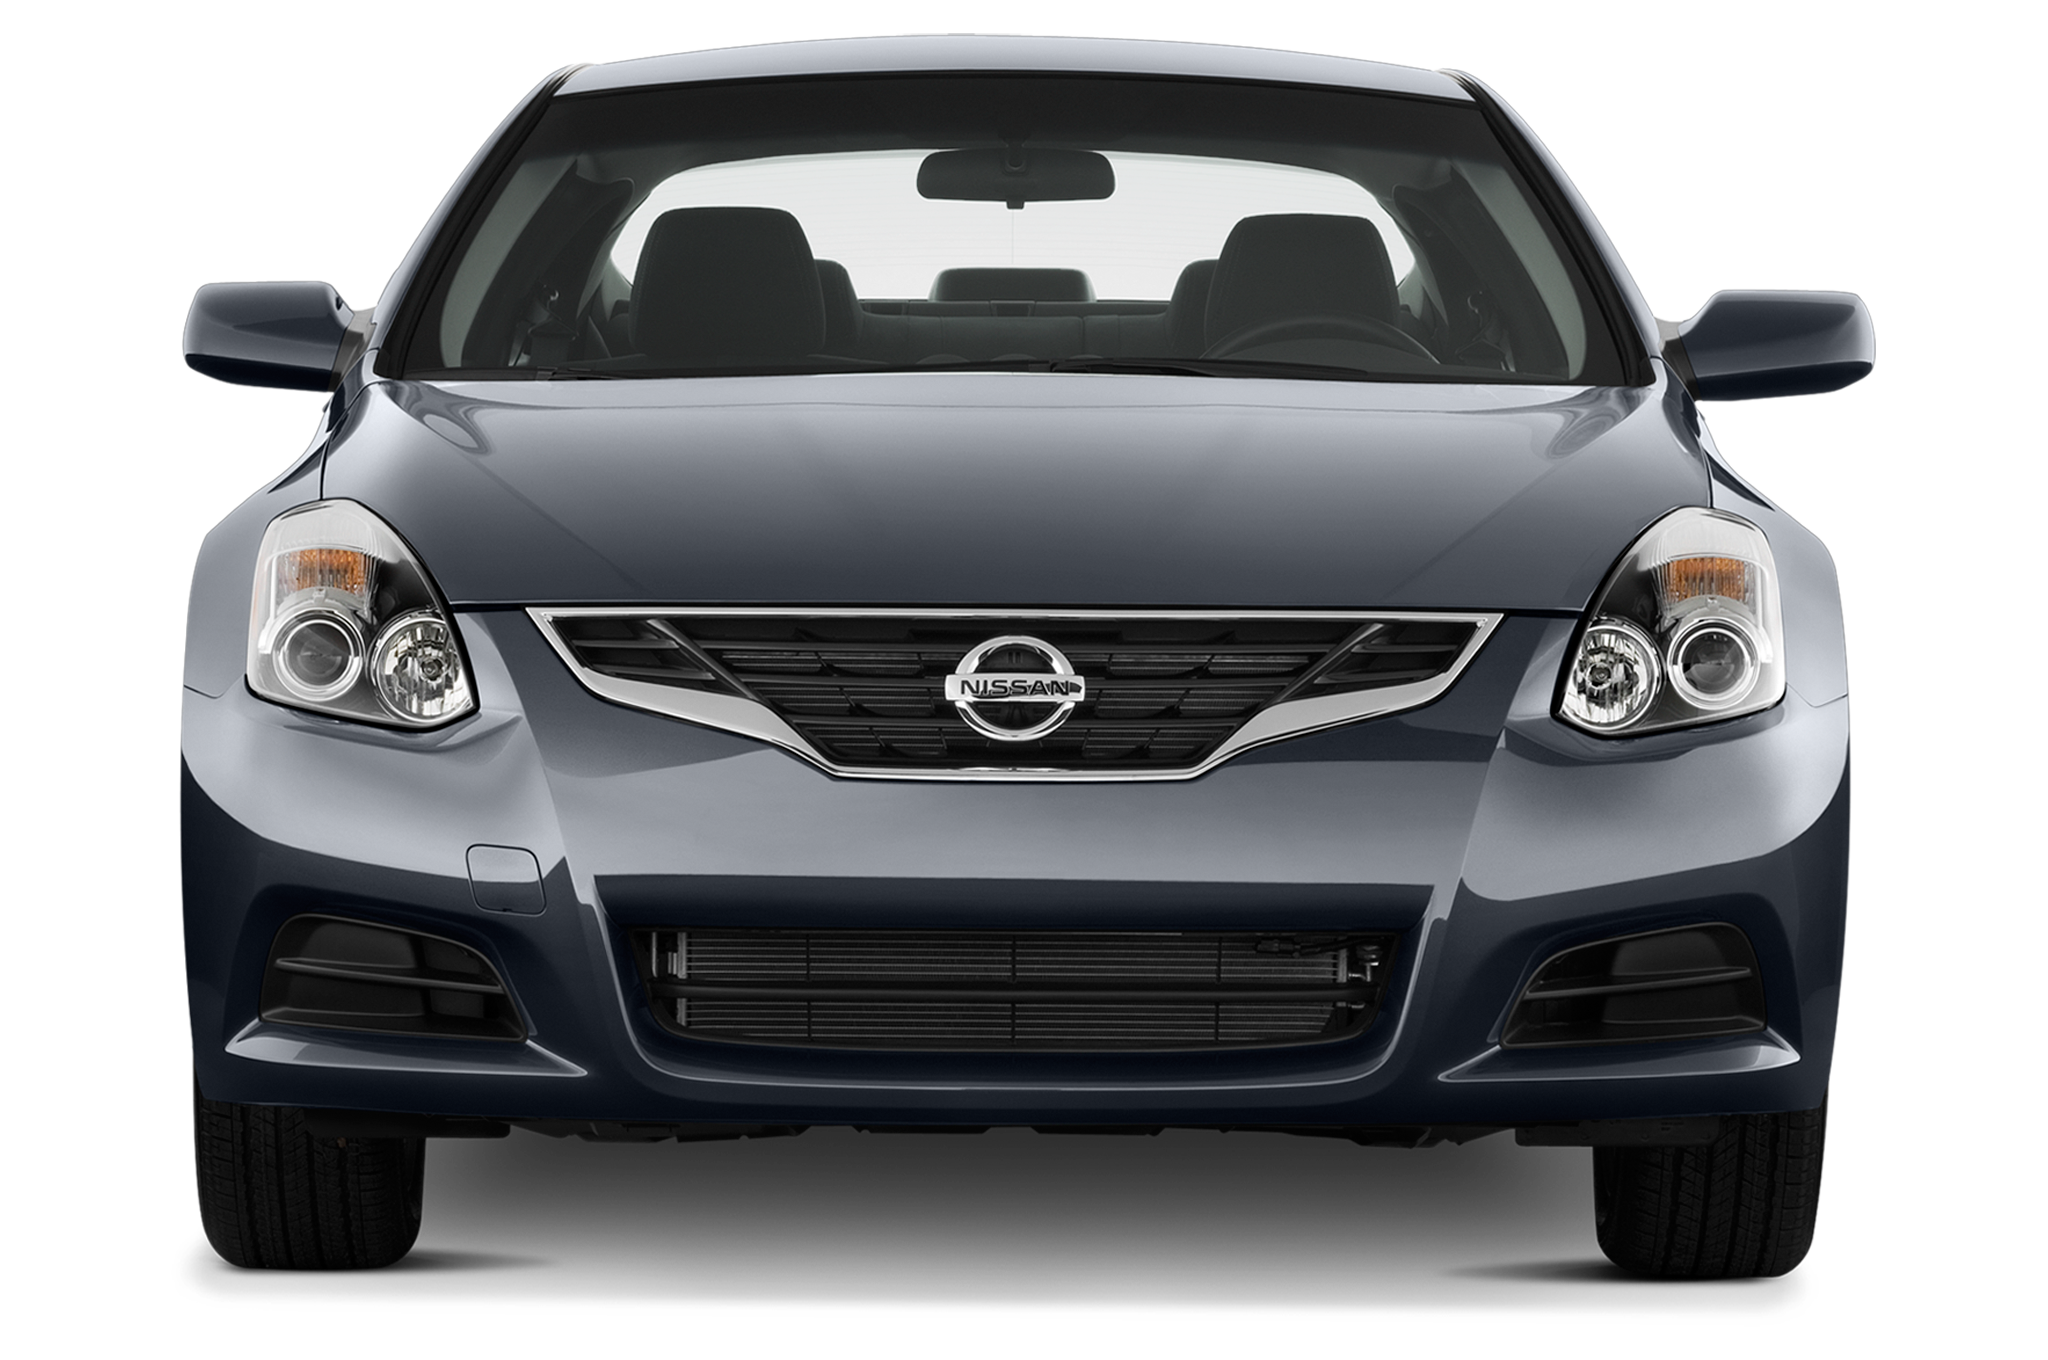 altima nissan coupe front motortrend cvt specs motor